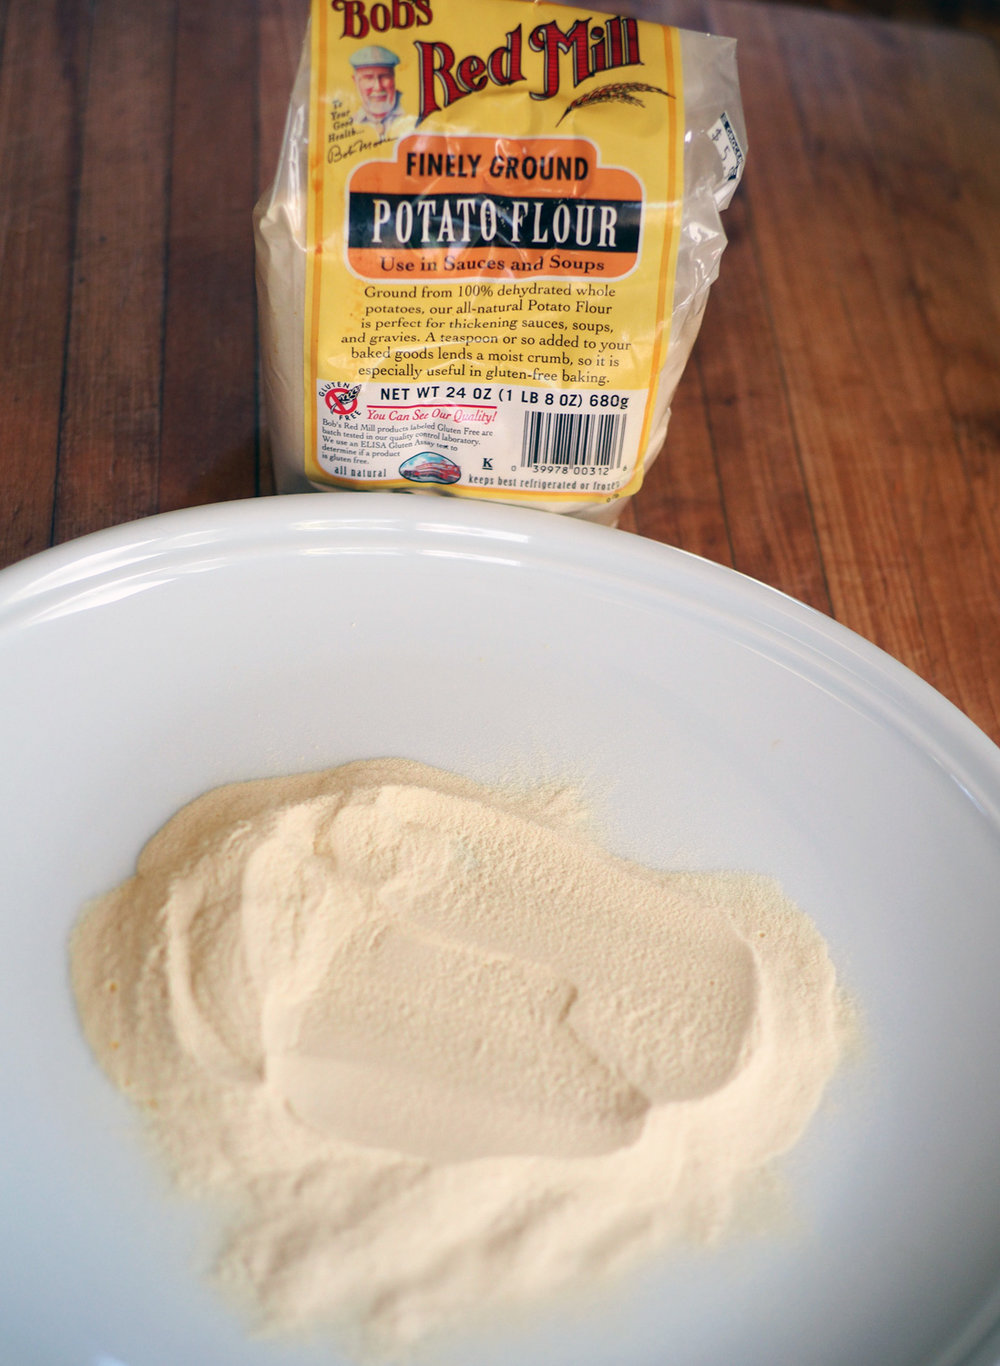 Potato flour is much finer, almost like talcum powder.